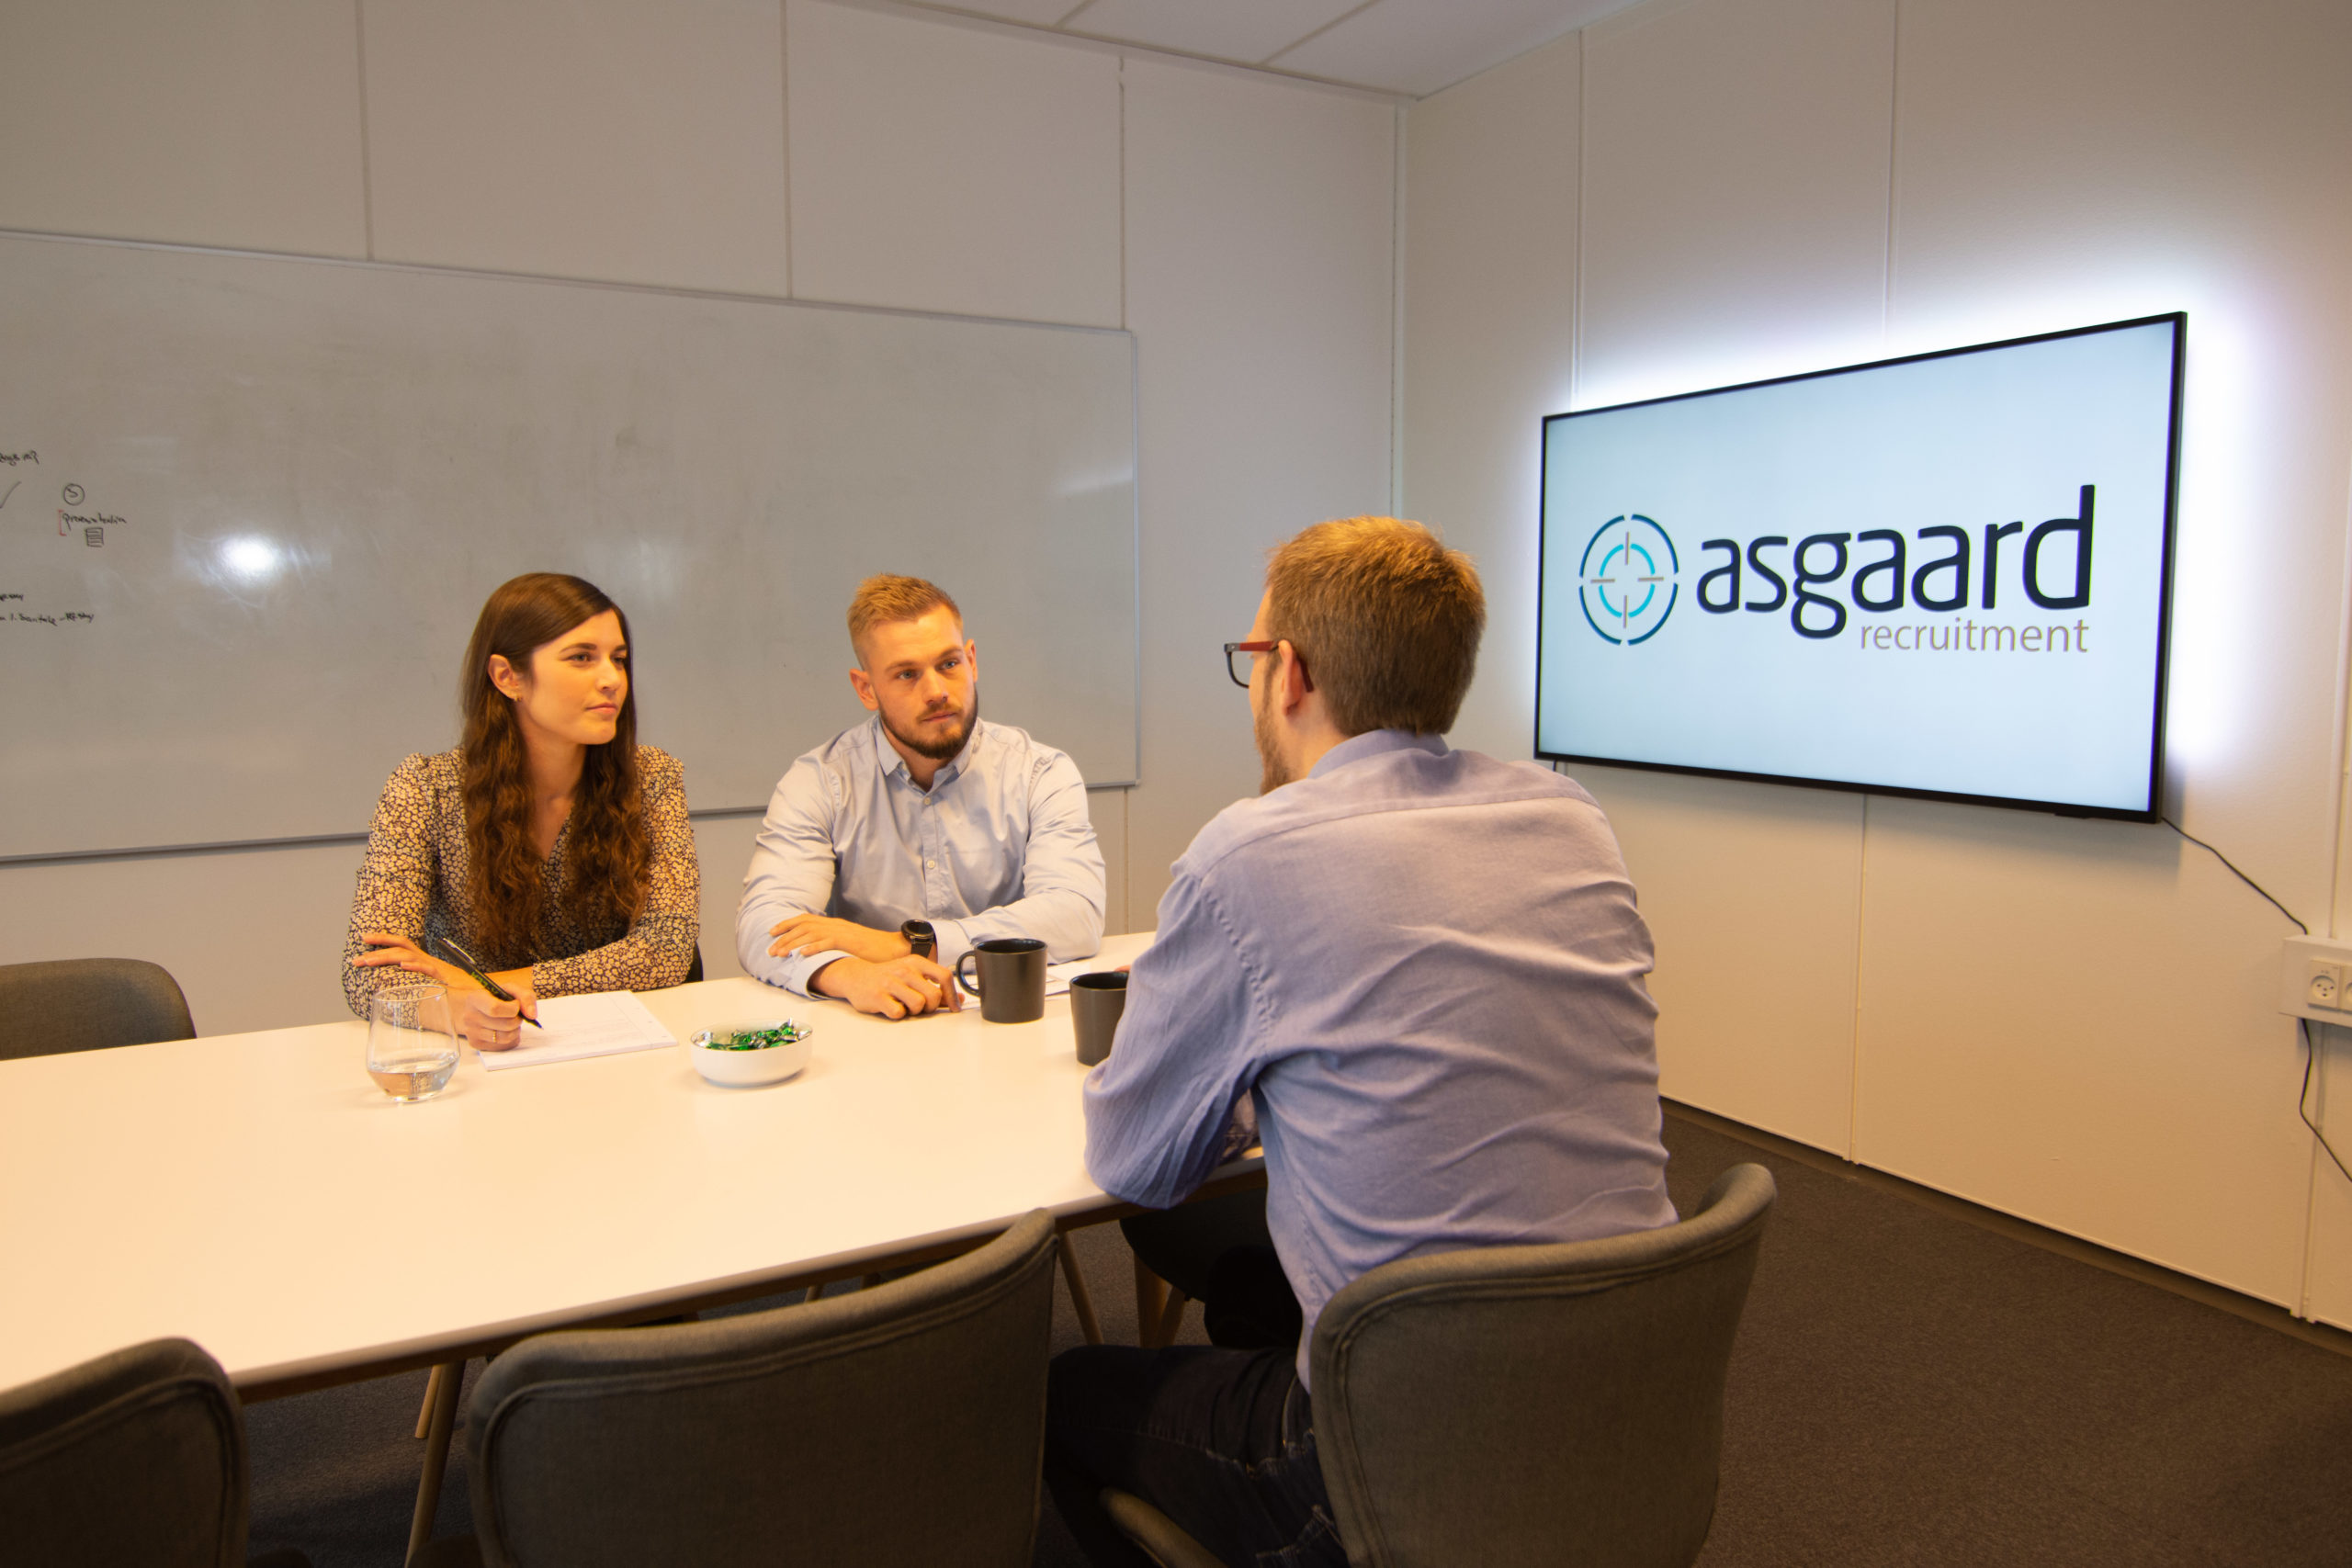 Asgaard Recruitment samtale